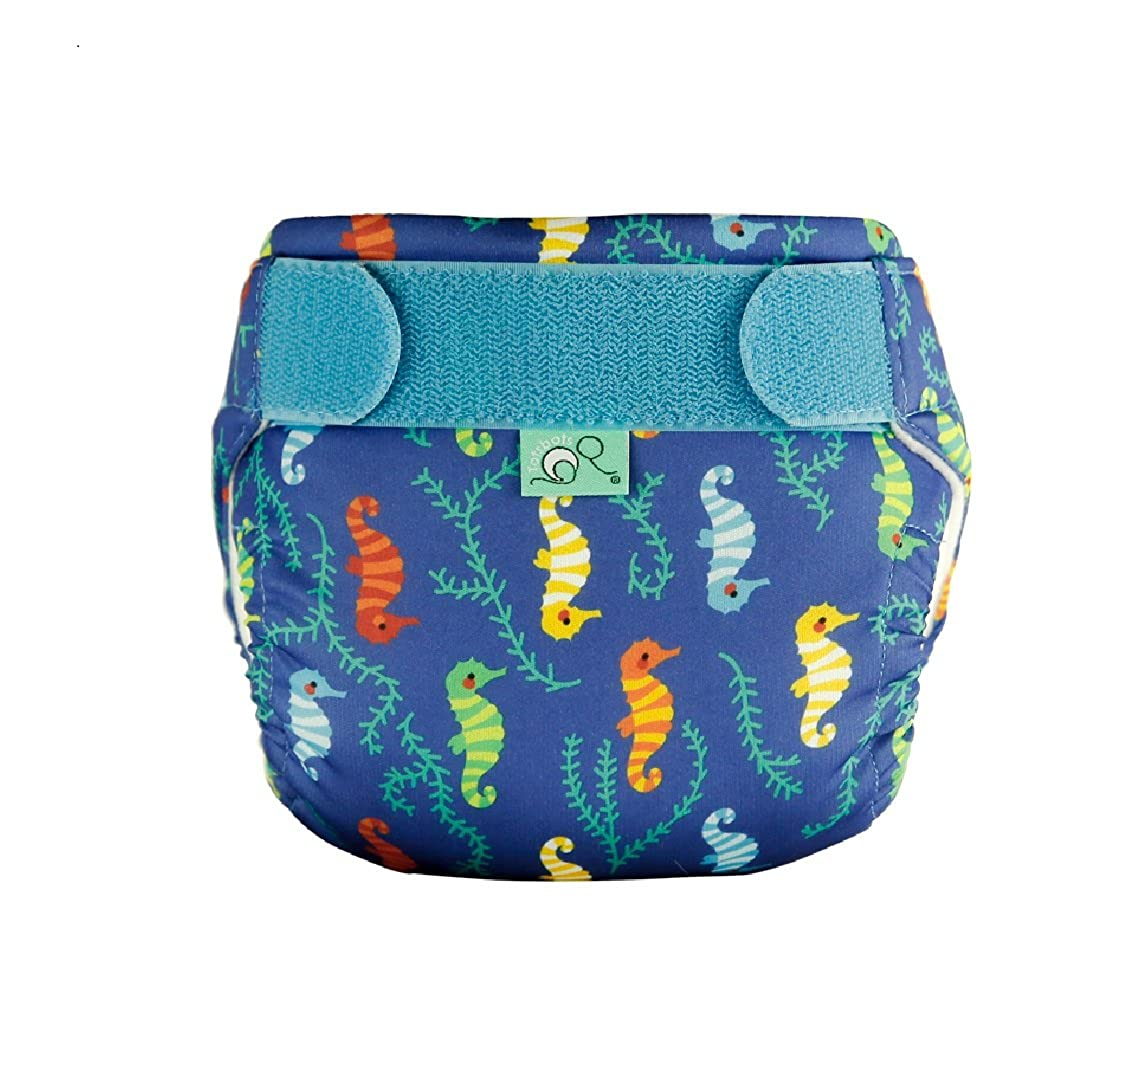 TotsBots Swims - Reusable Washable Baby and Toddler Swim Diaper (Wee Seahorses, Size 2 20-35lbs) Totsbots Ltd 5060510761674